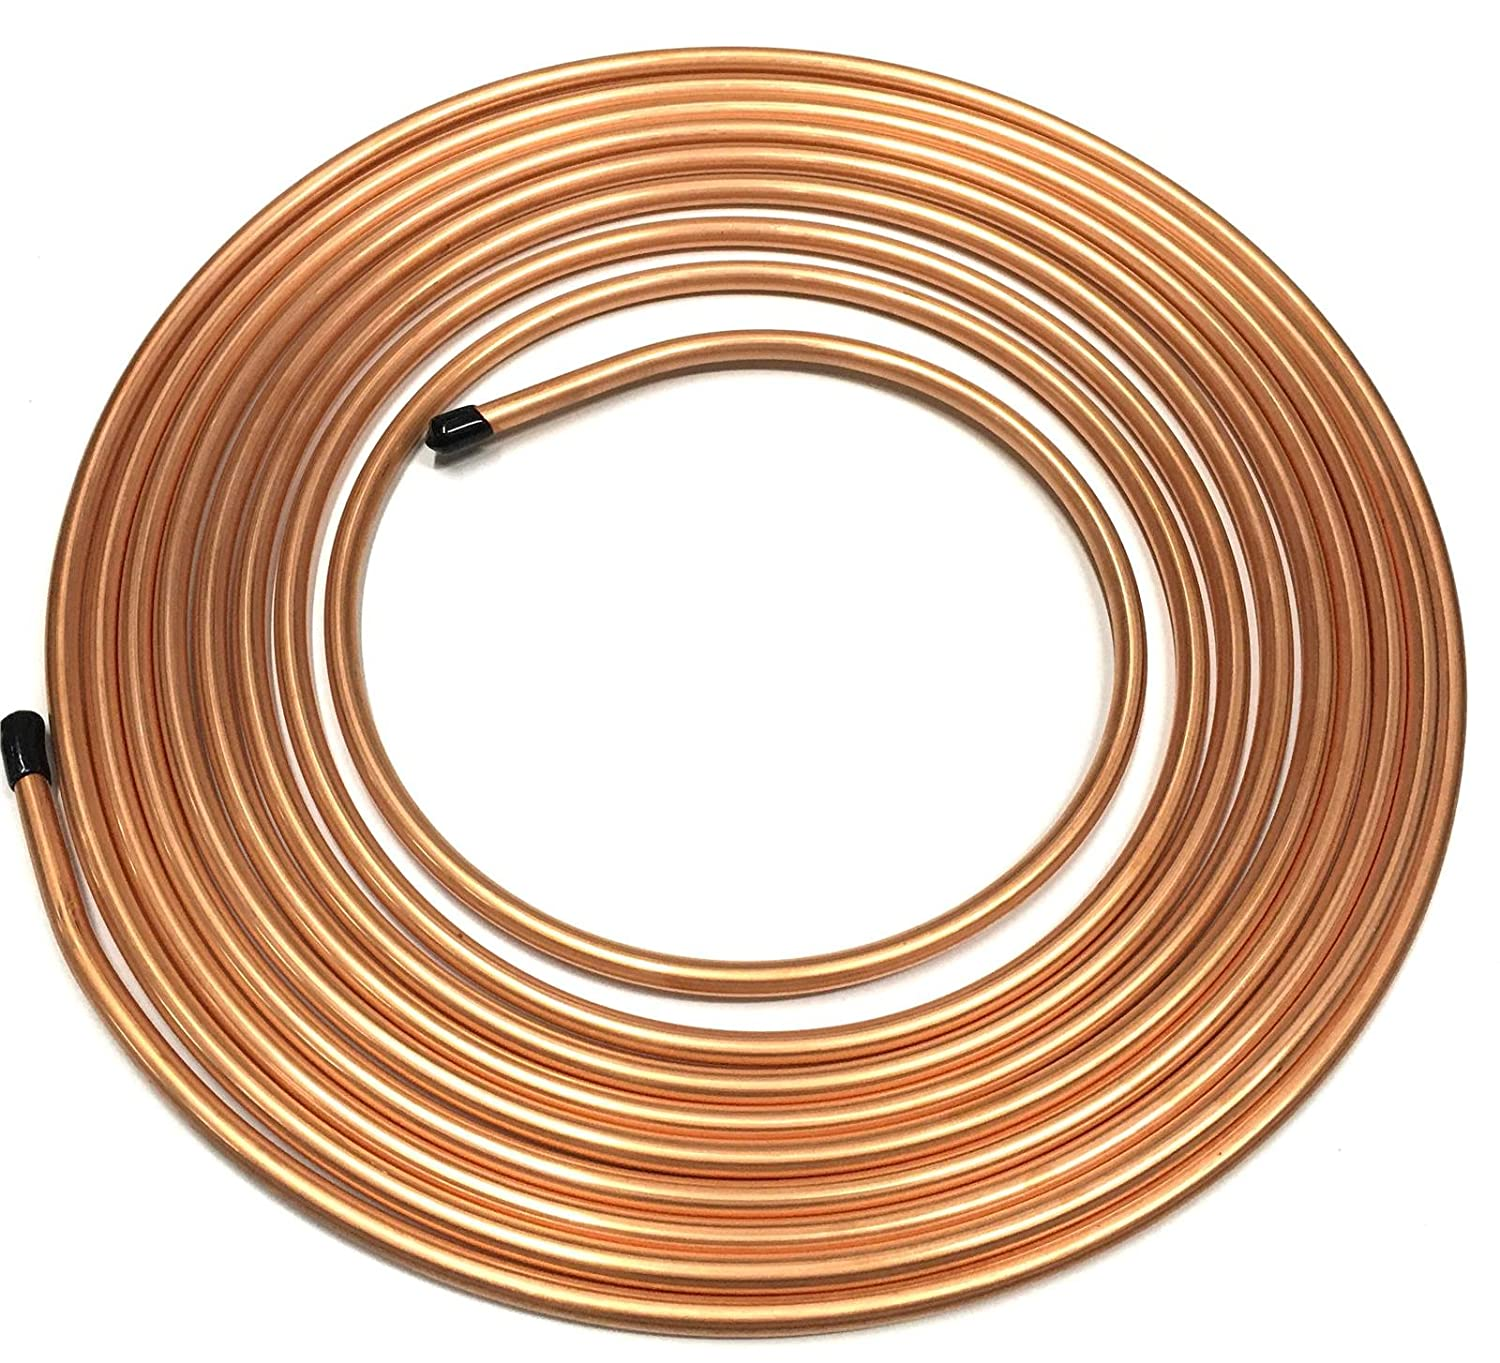 Brake Pipe Copper Line 5/16' 25Ft Joiner Male Female Nuts Ends Tubing Joint Pipe AutoPower